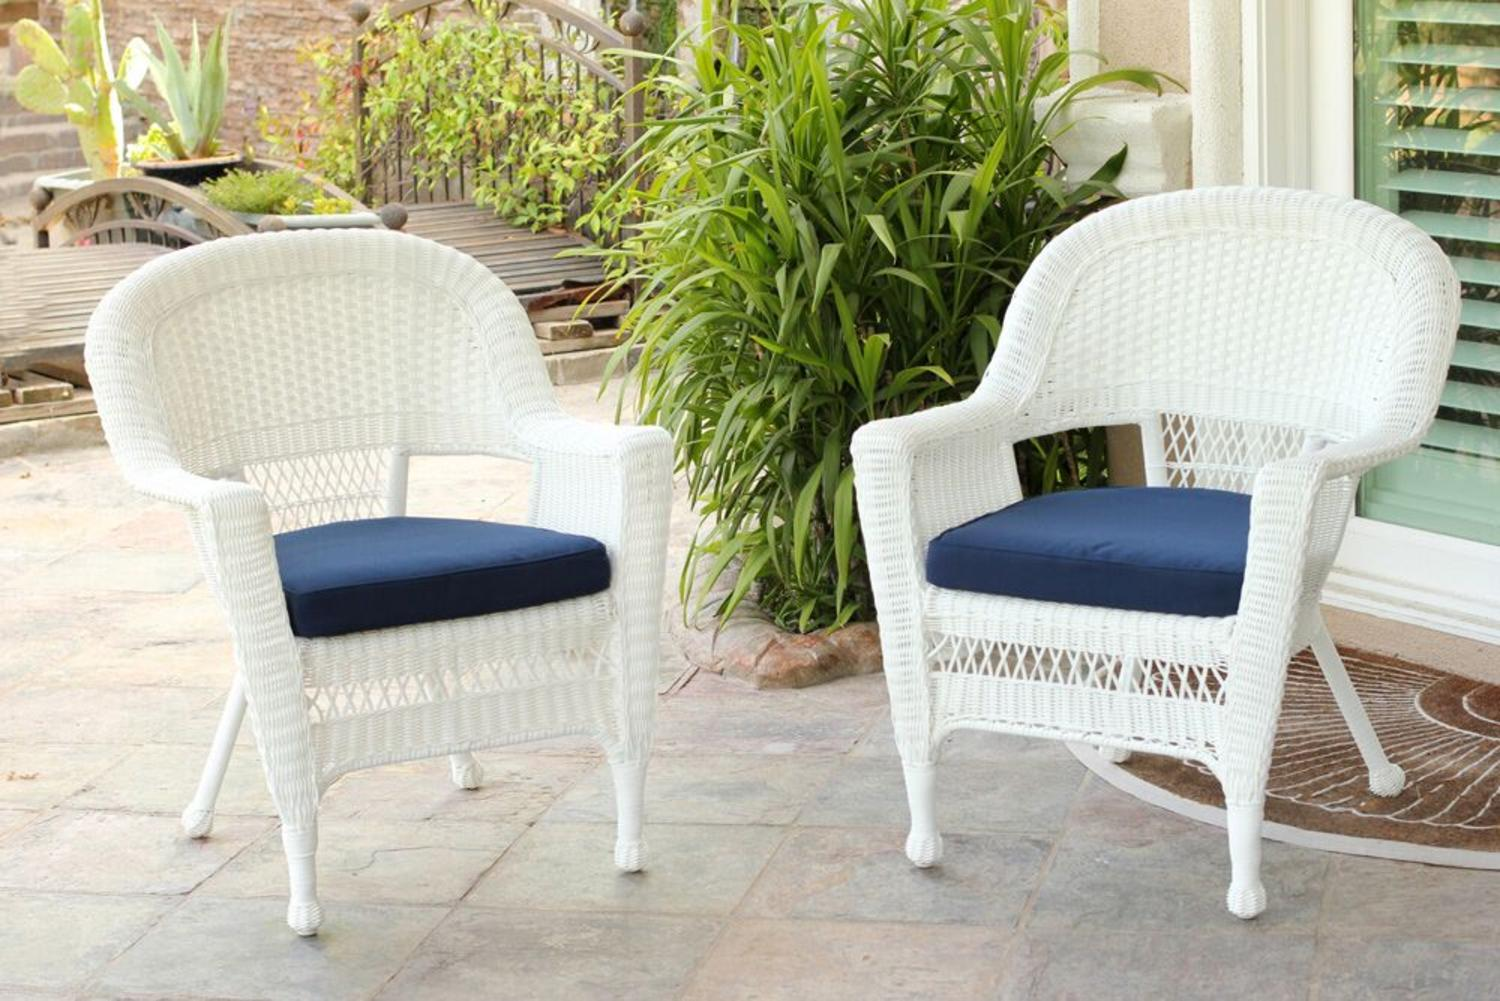 comfortable wicker chairs desk chair stool set of 2 white resin outdoor patio garden navy blue cushions walmart com